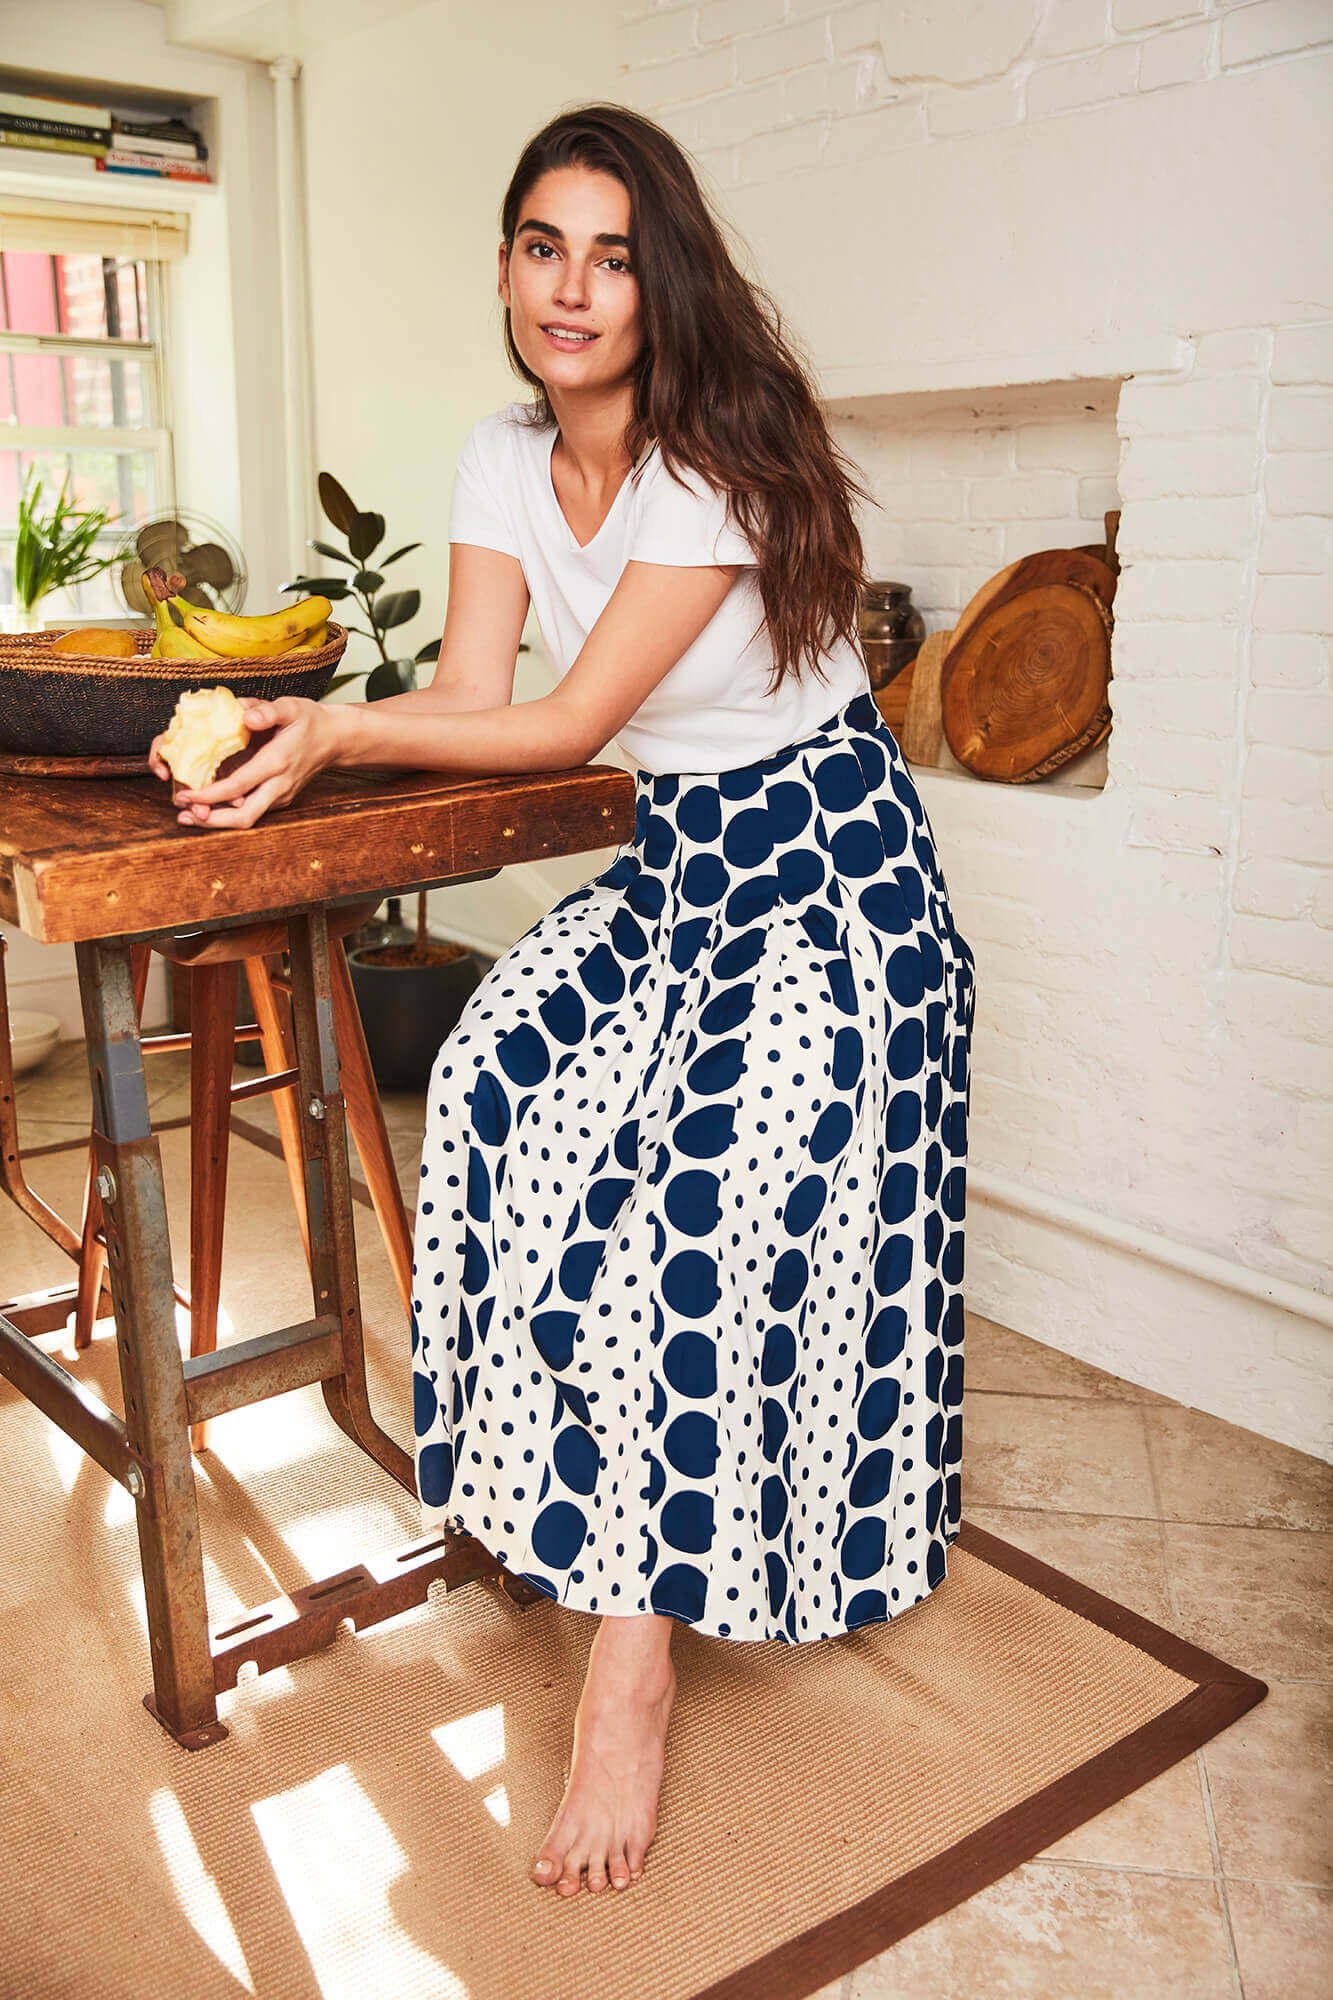 Young brunette wearing polka dot skirt and white blouse